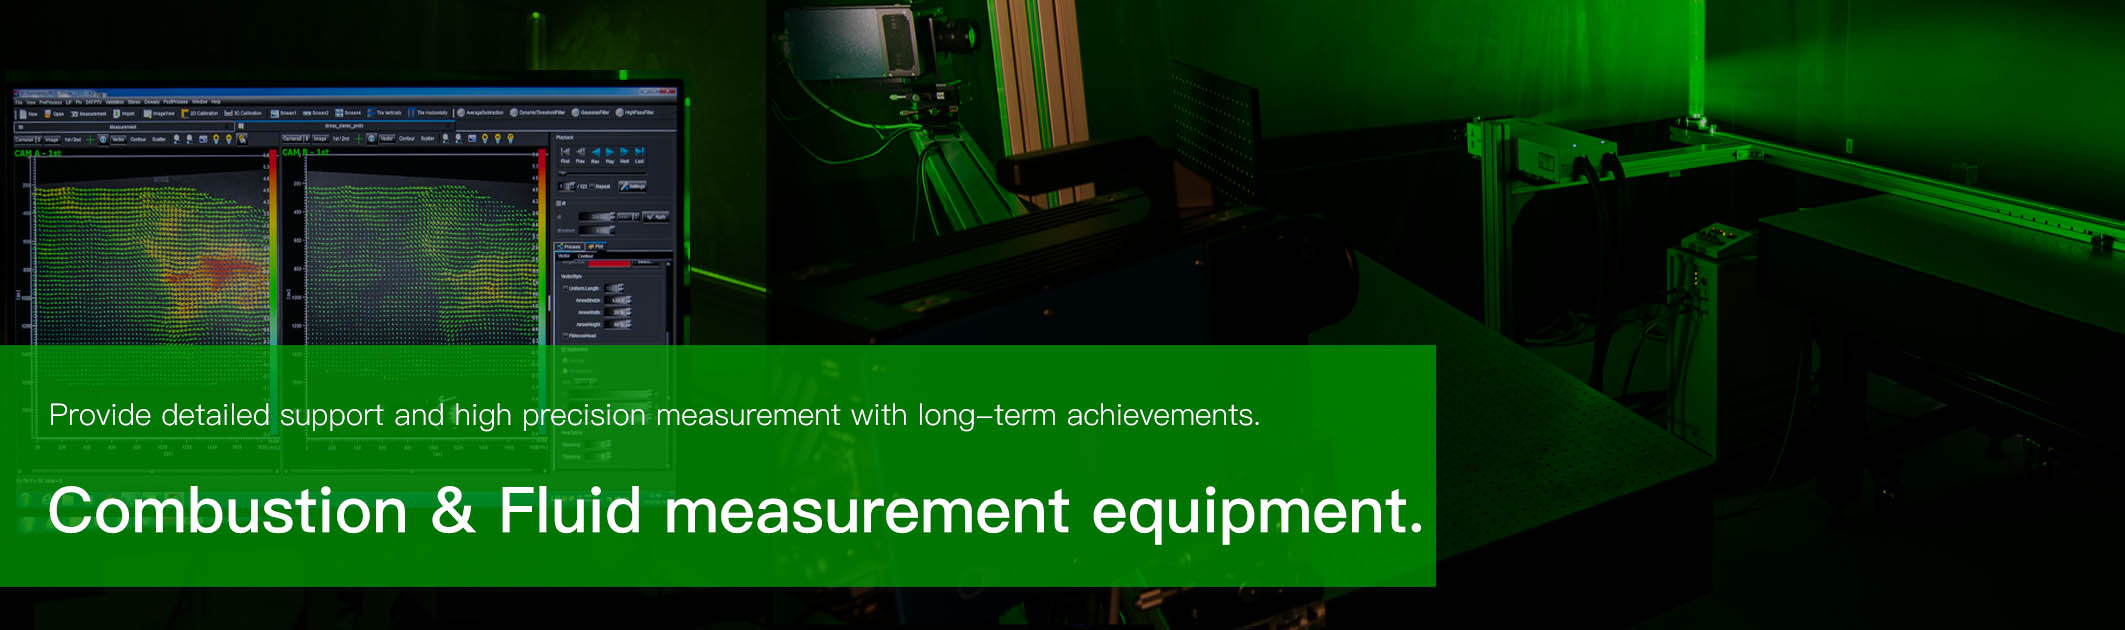 Through PIV, LDV, and LIF technologies, we have achieved many years of achievement, achieving fine support and accurate measurement. Lineup of combustion and fluid measurement equipment.